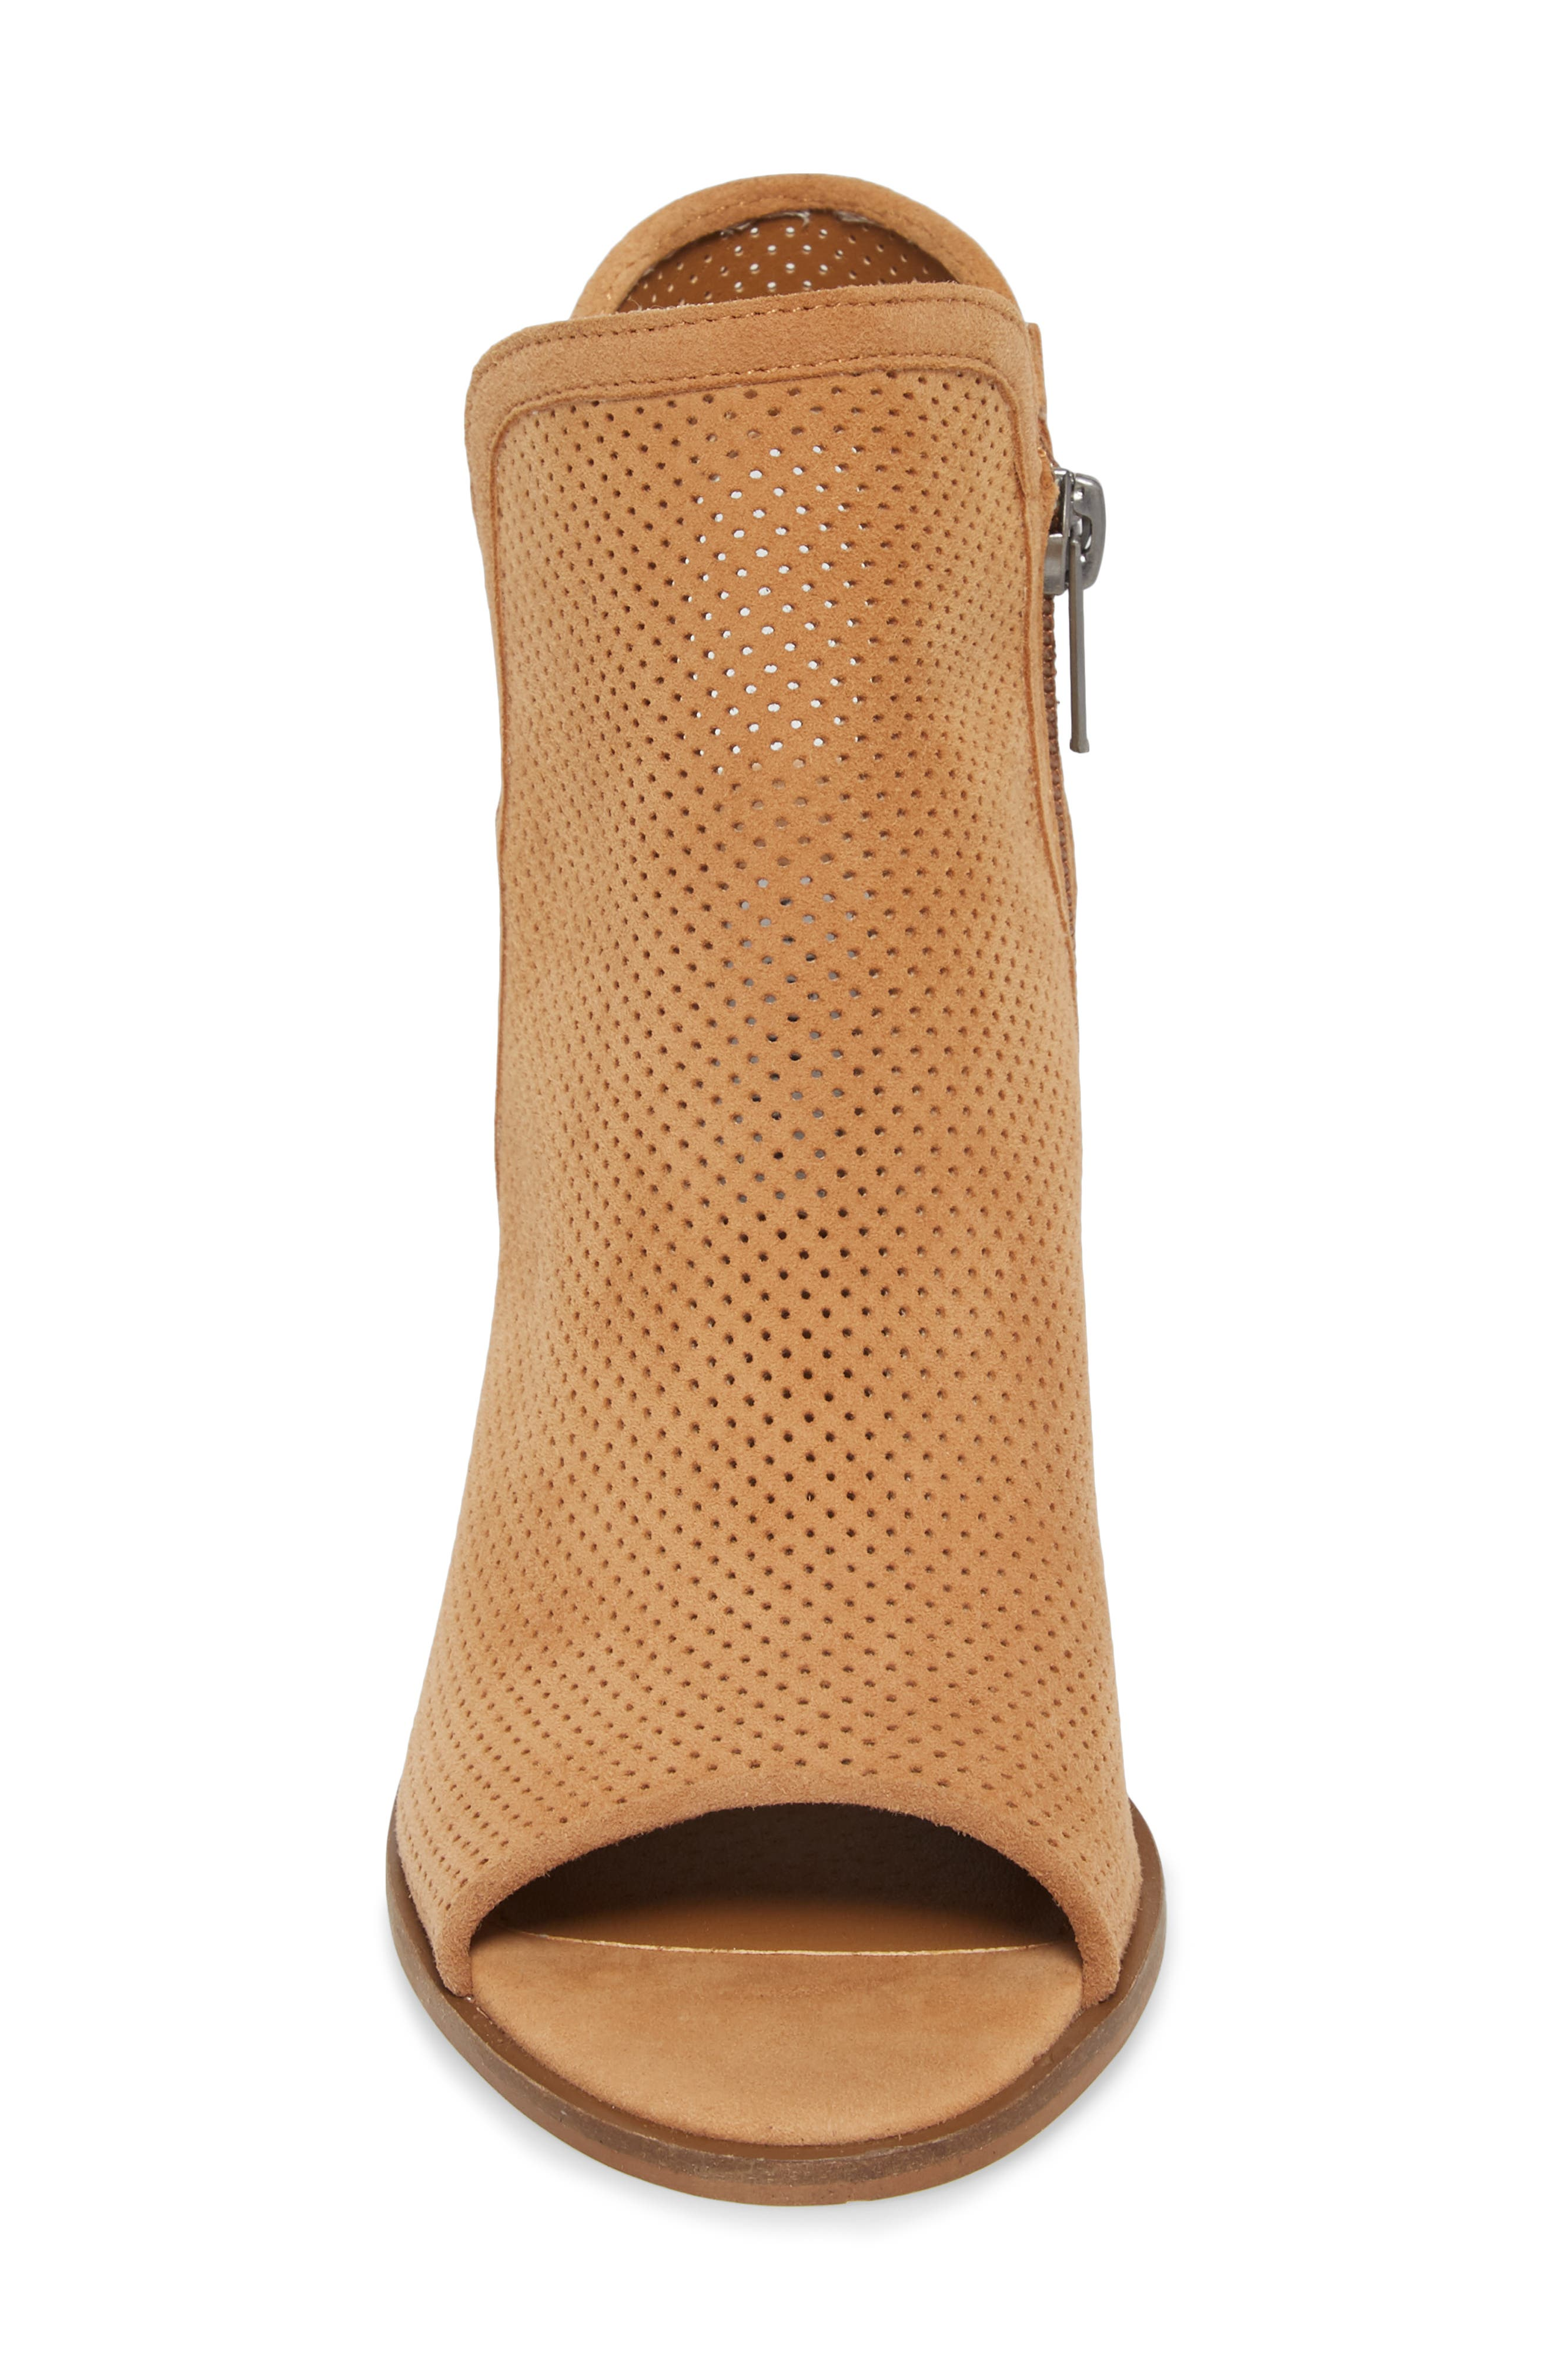 Maxine Perforated Bootie,                             Alternate thumbnail 4, color,                             Cognac Suede